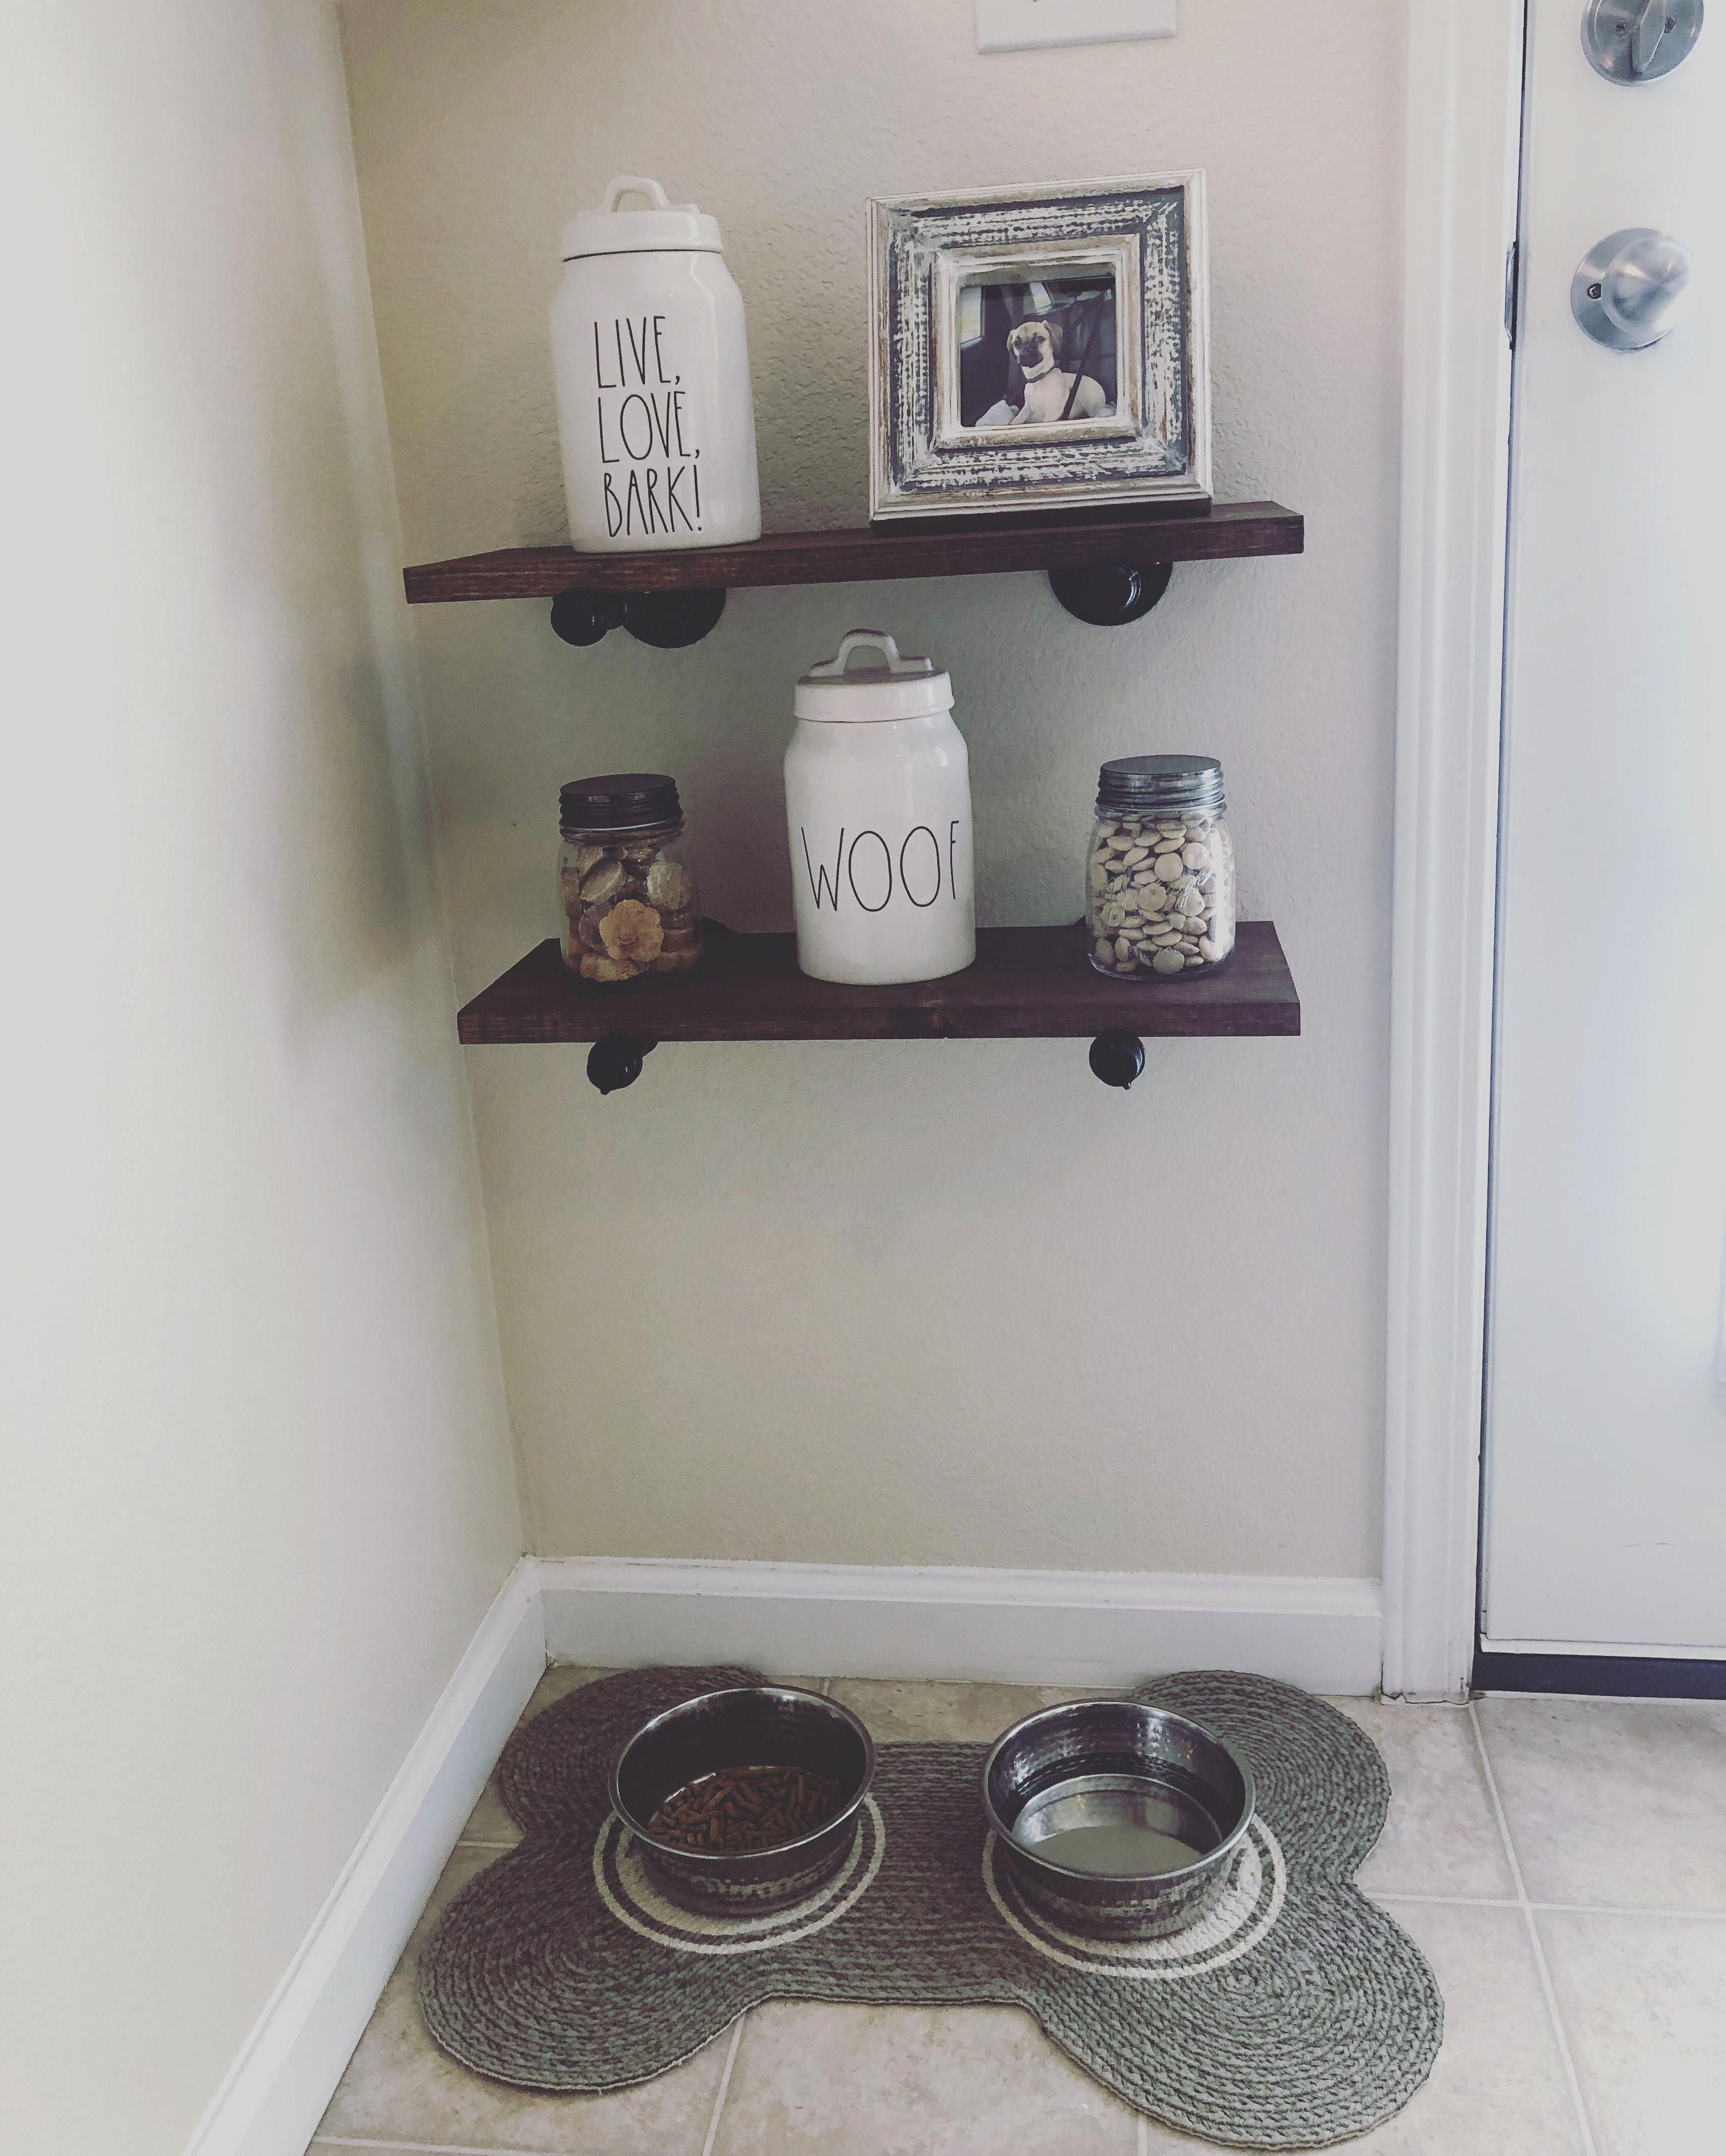 Dog Areas In Apartments Small Spaces Dogareasinapartmentssmallspaces Home Puppy Room Dog Rooms